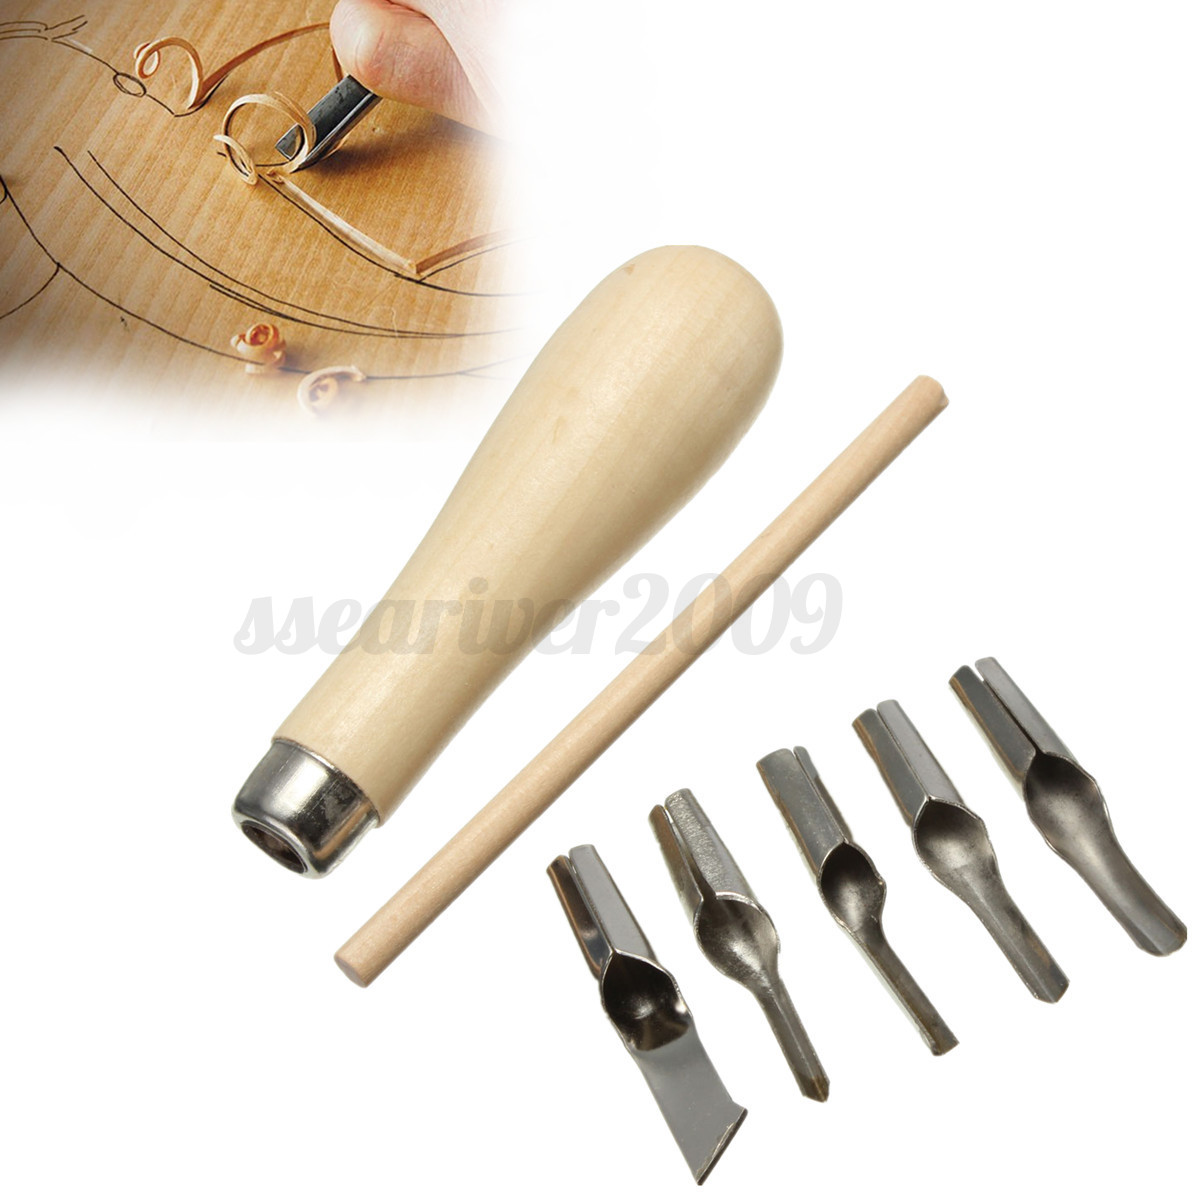 Lino block cutting rubber stamp carving tools with blade